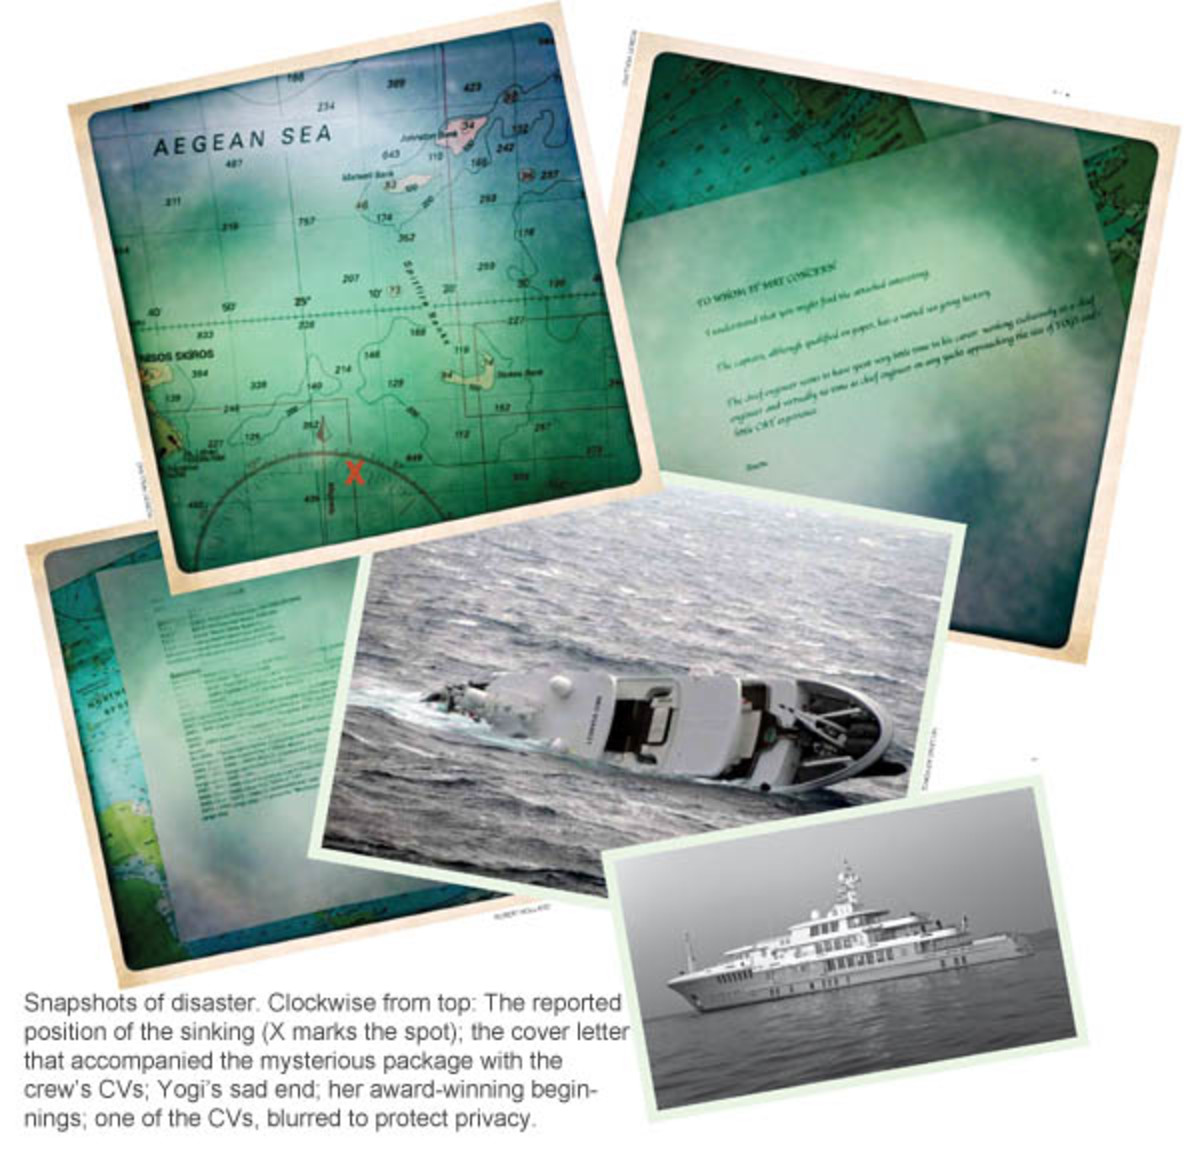 Yogi sinks, various images of the disaster